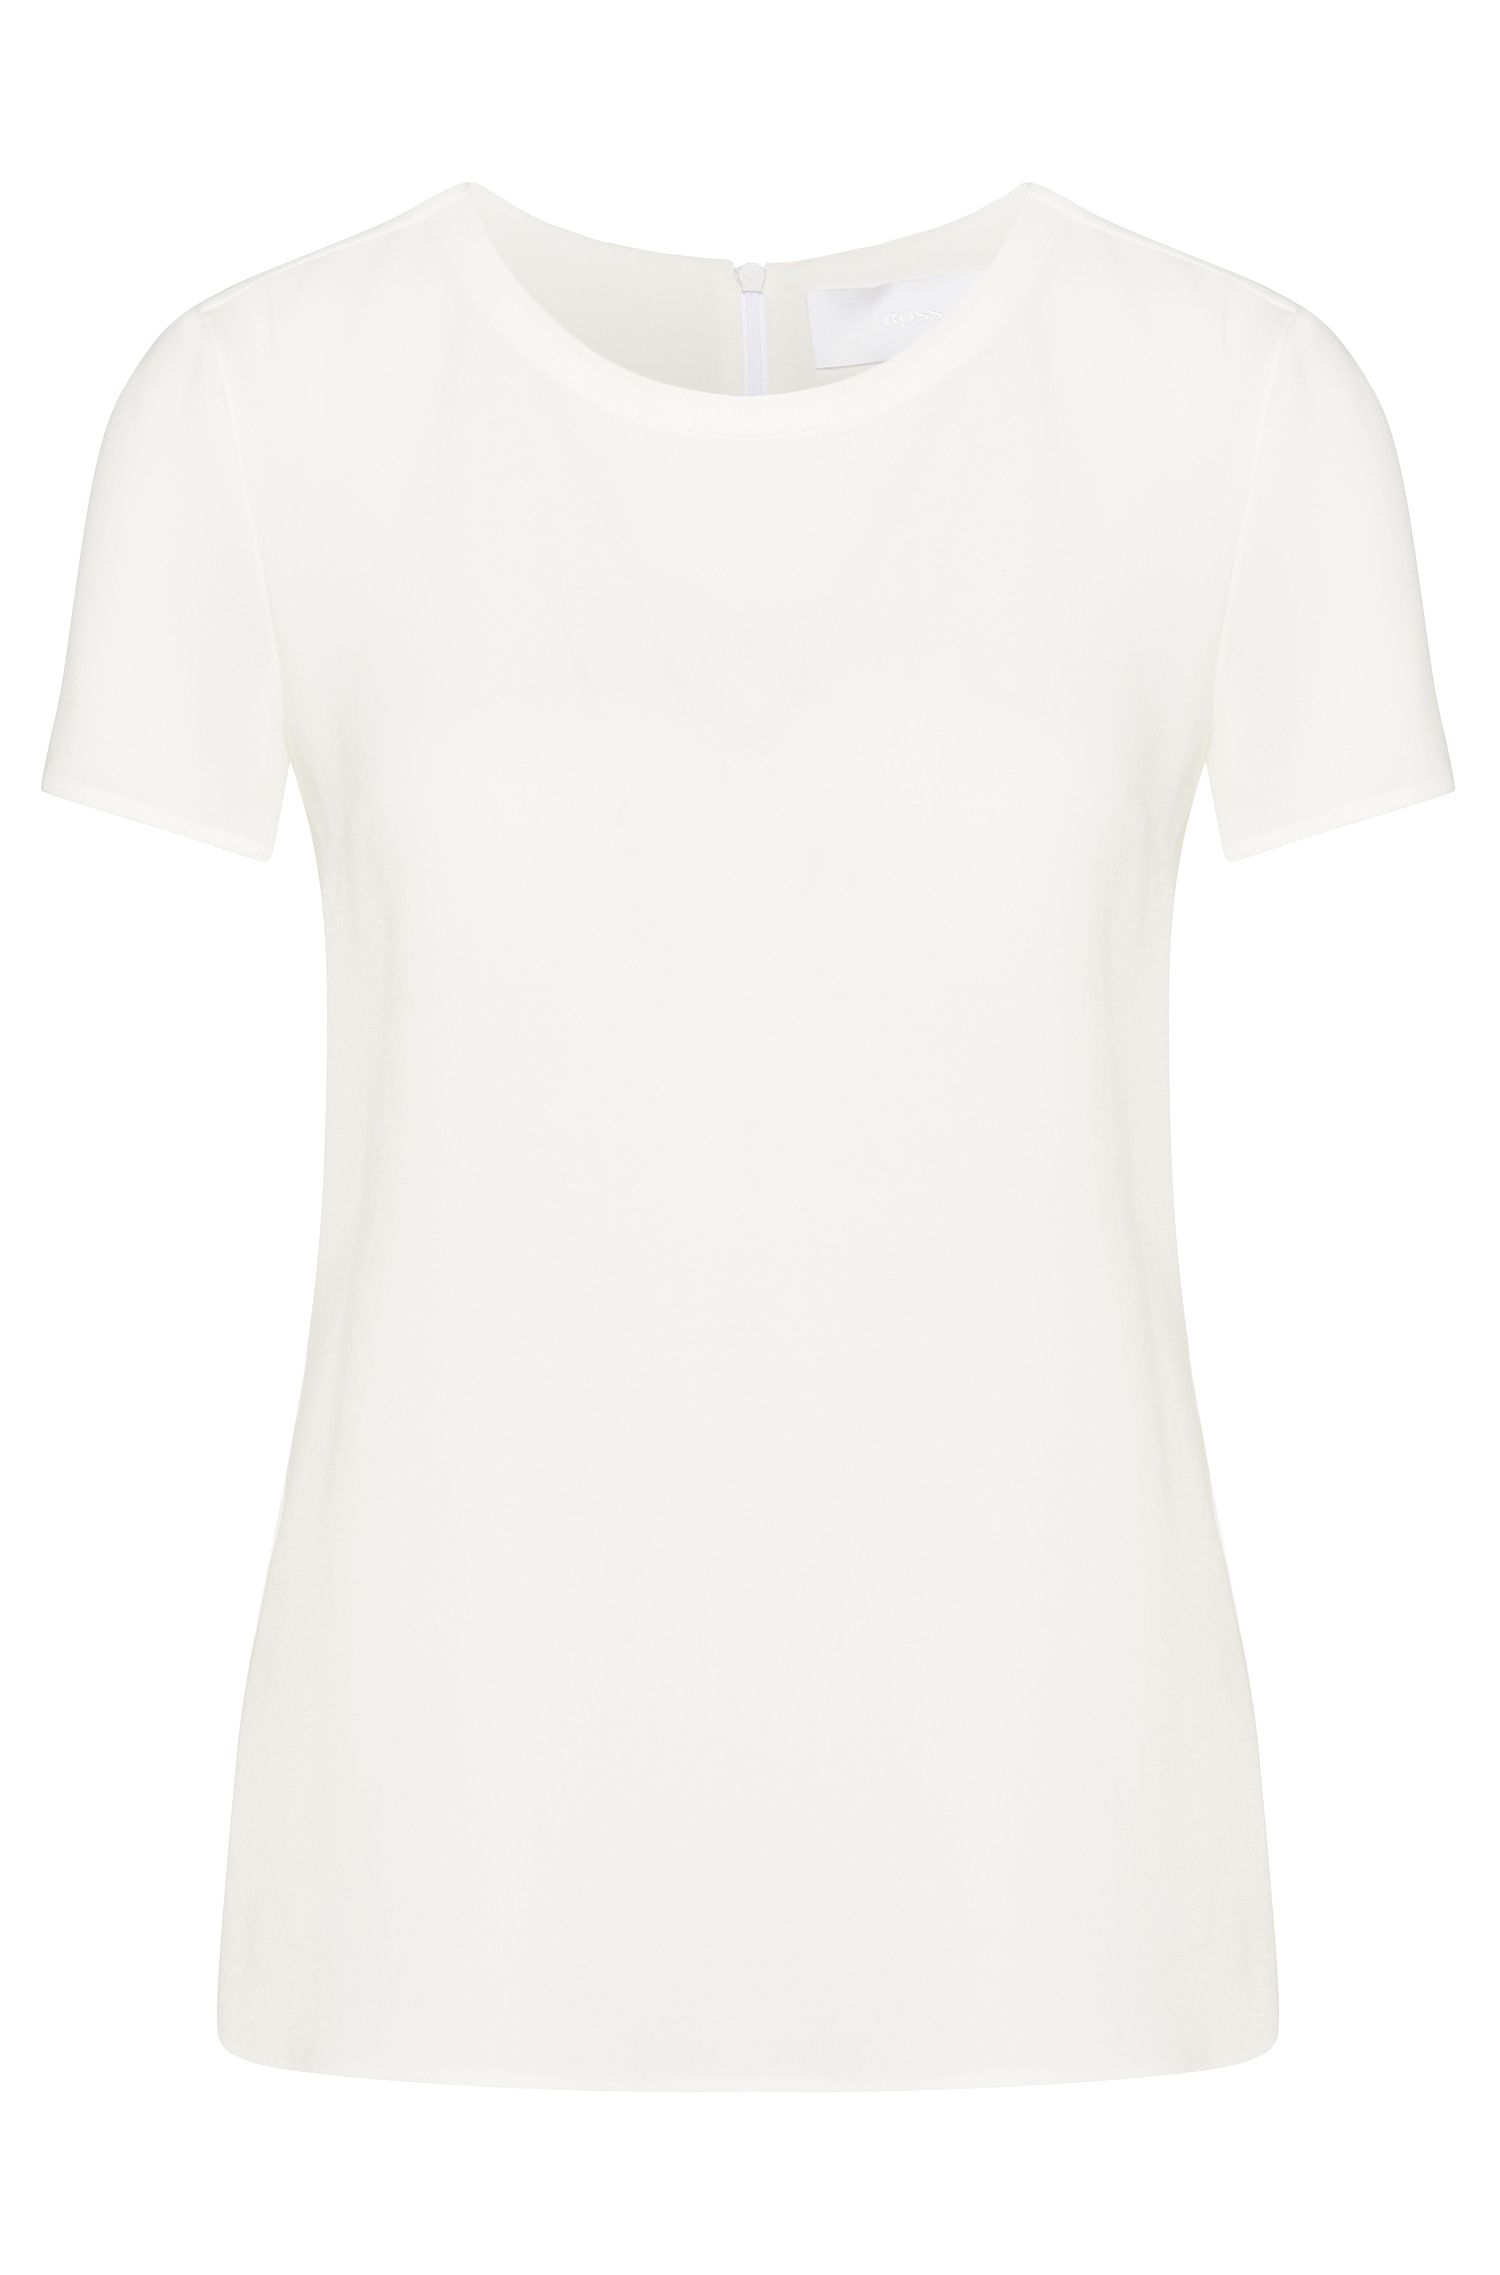 Softly falling crepe top from BOSS Womenswear Fundamentals